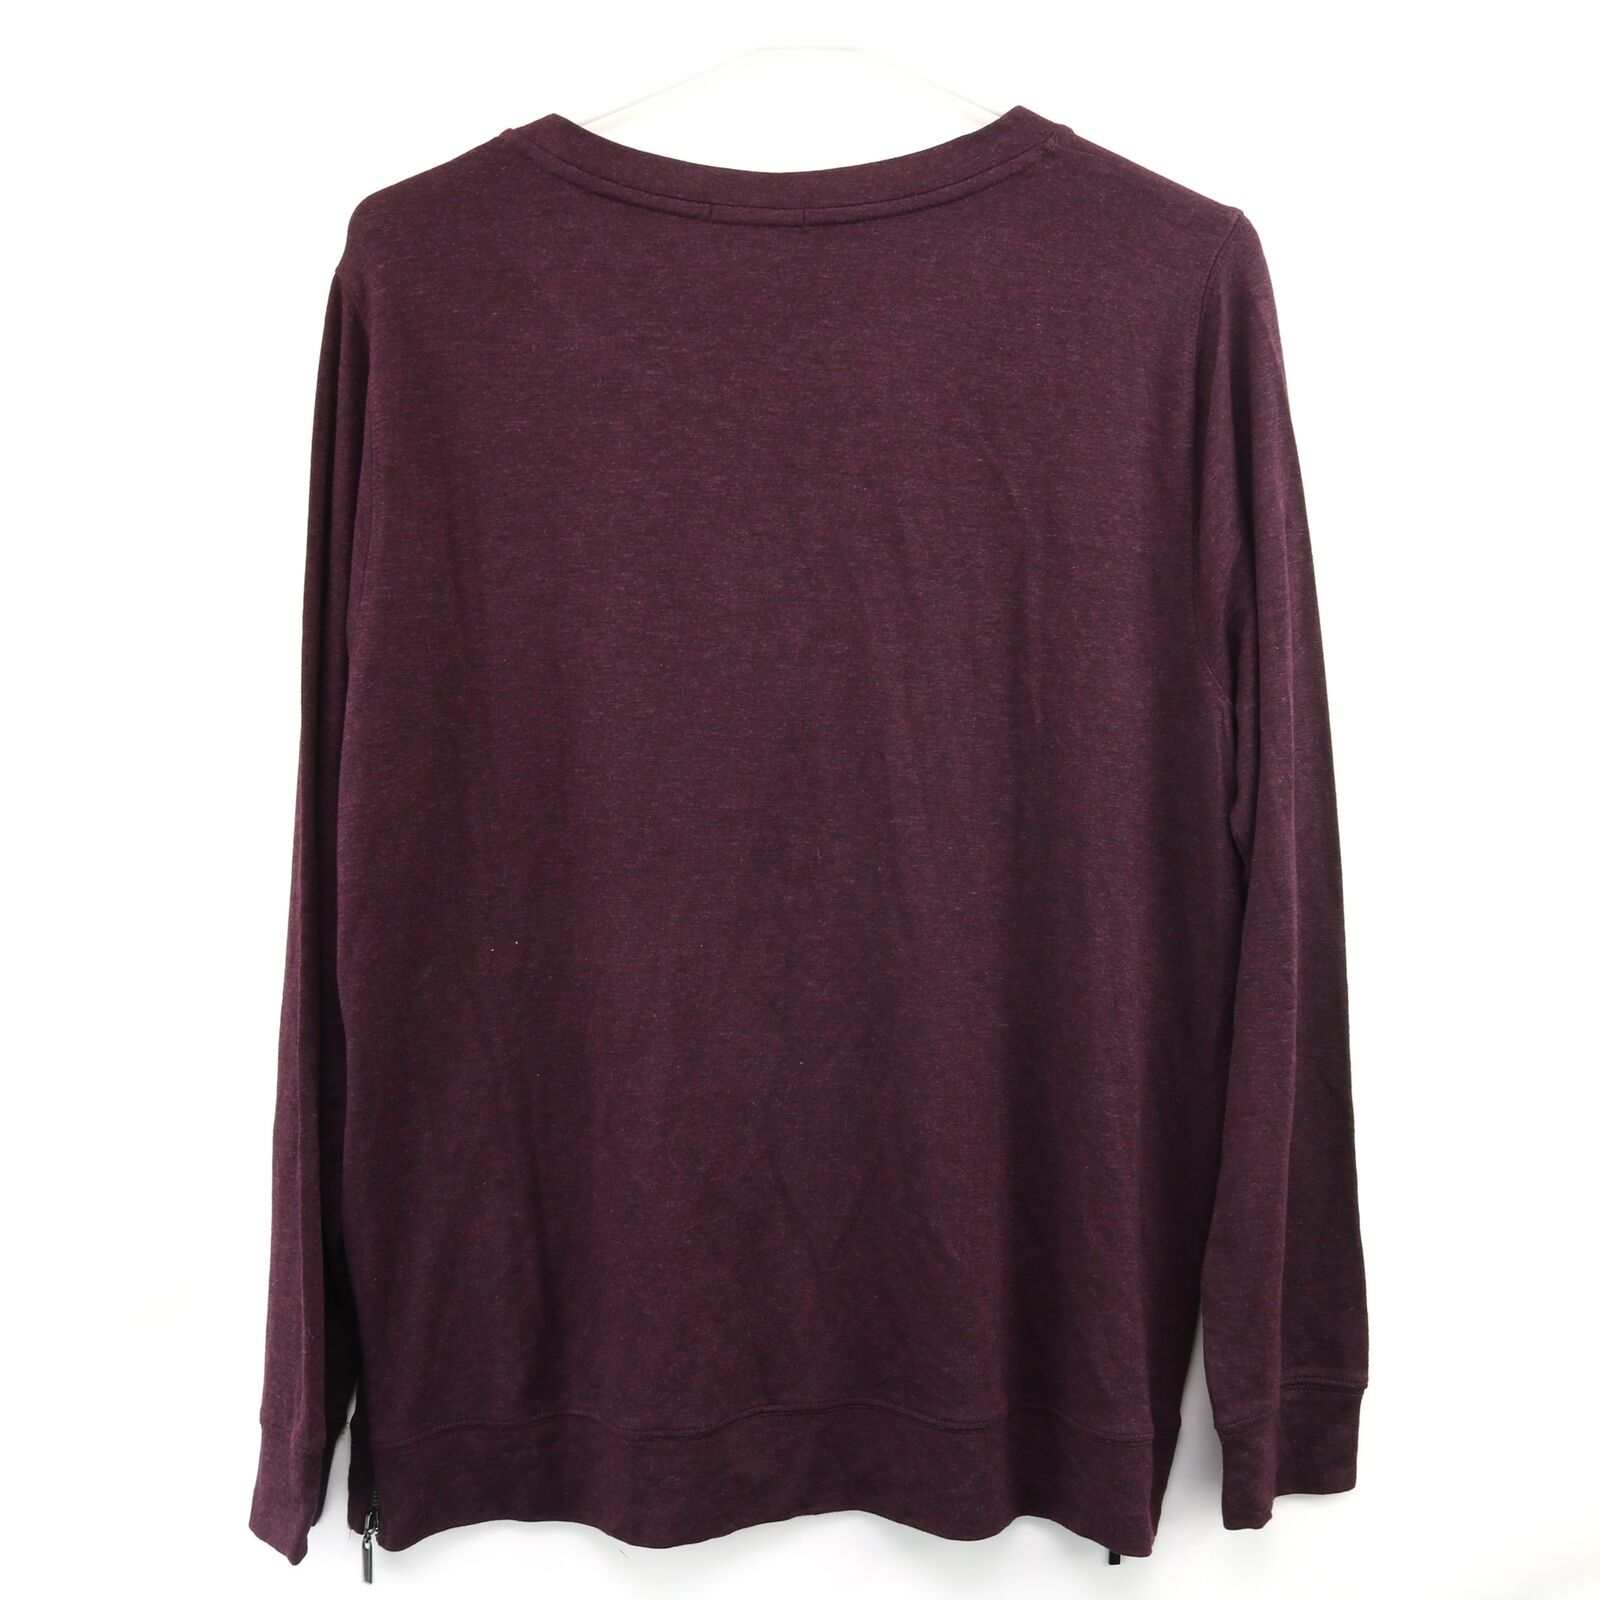 Matty M Women/'s Long Sleeve Tee with 2 Side Zippers